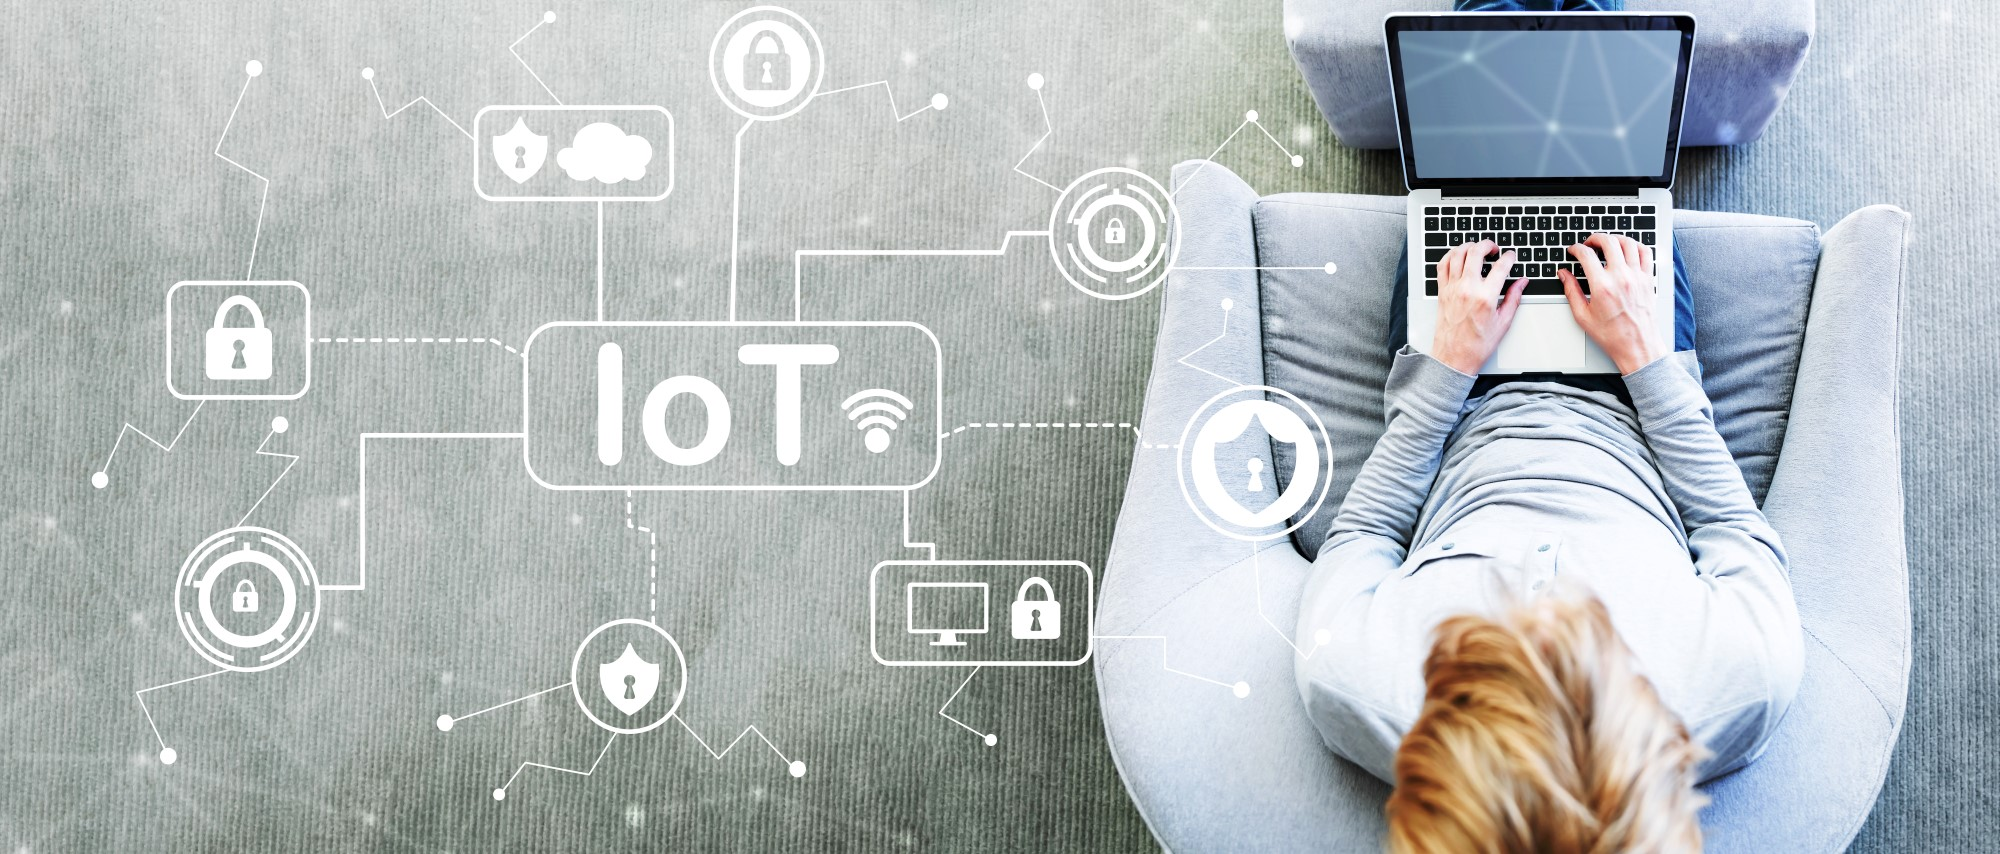 IoT and Security - still up-to-date